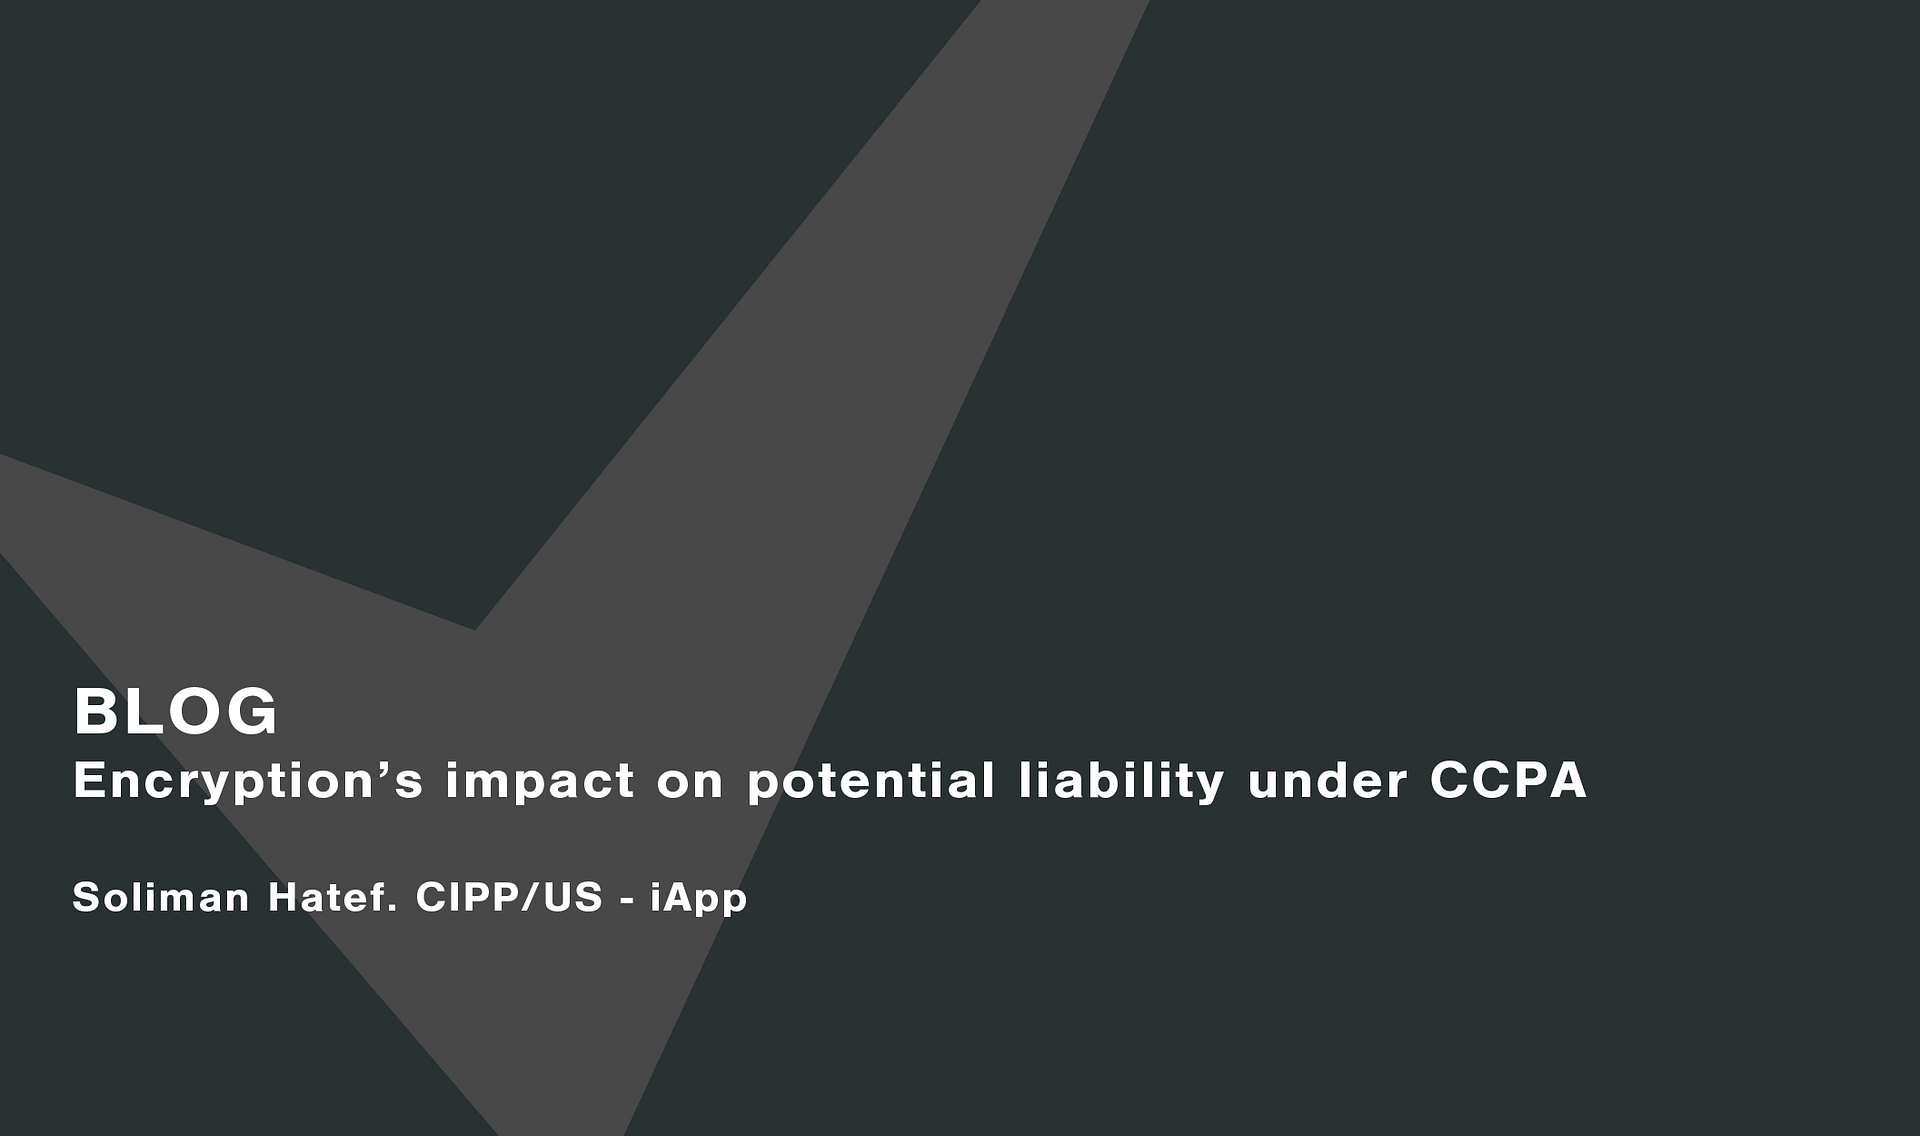 Encryption's impact on potential liability under CCPA Cassie personal information & consent management